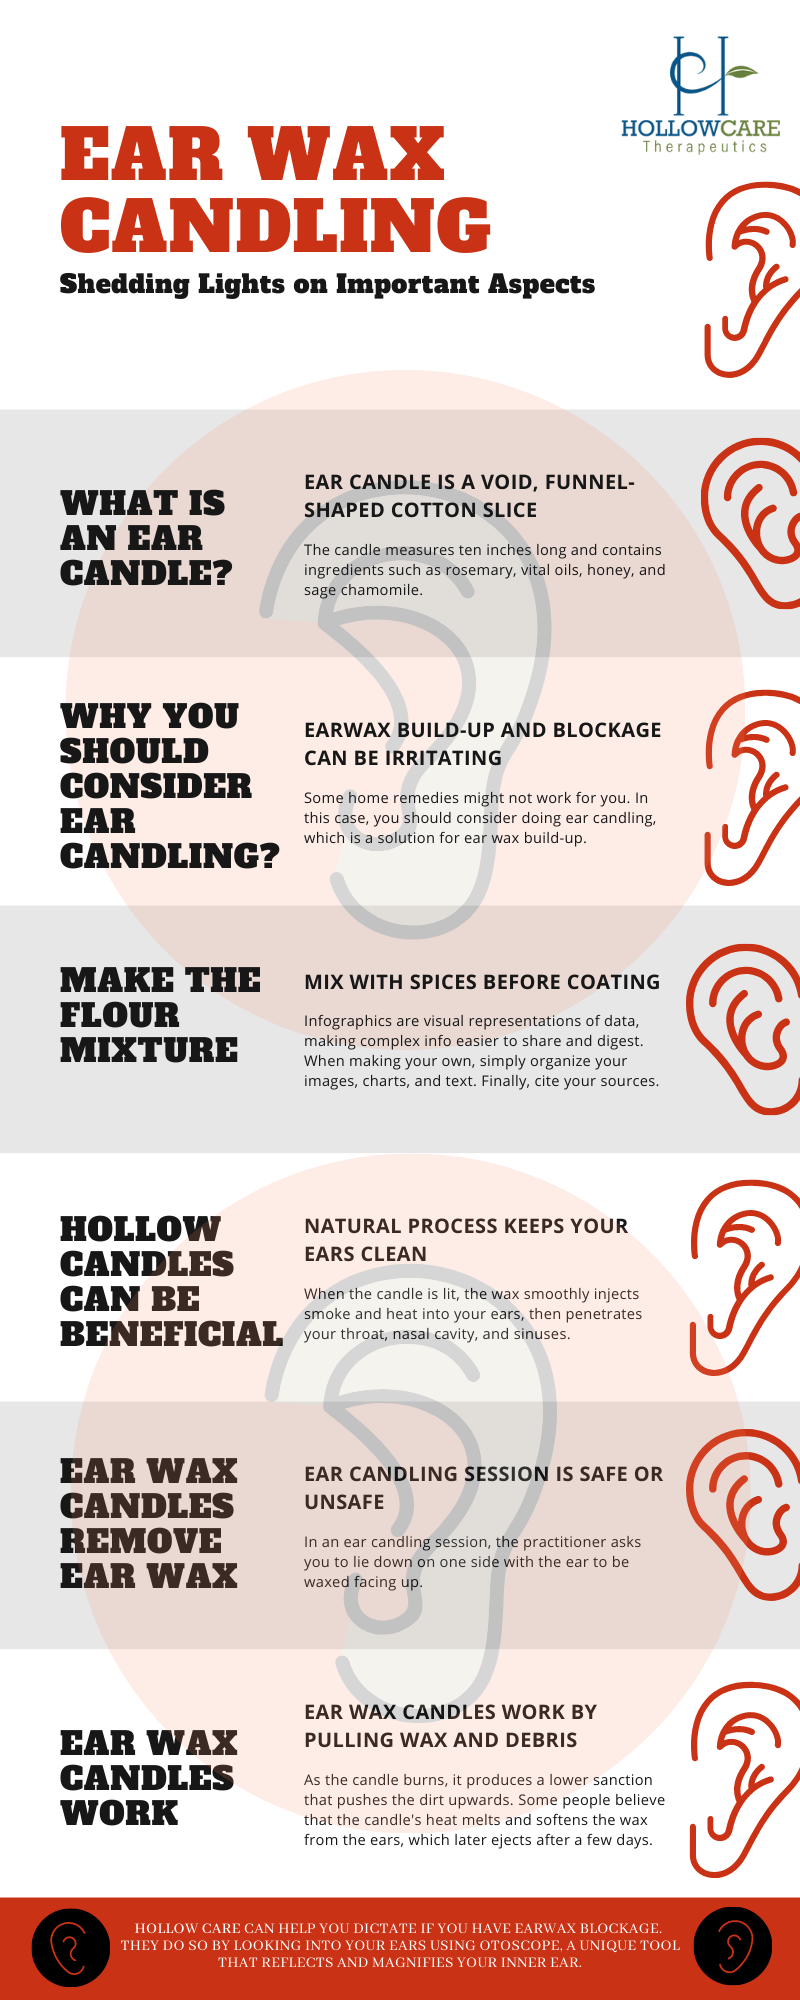 Ear Wax Candling Process